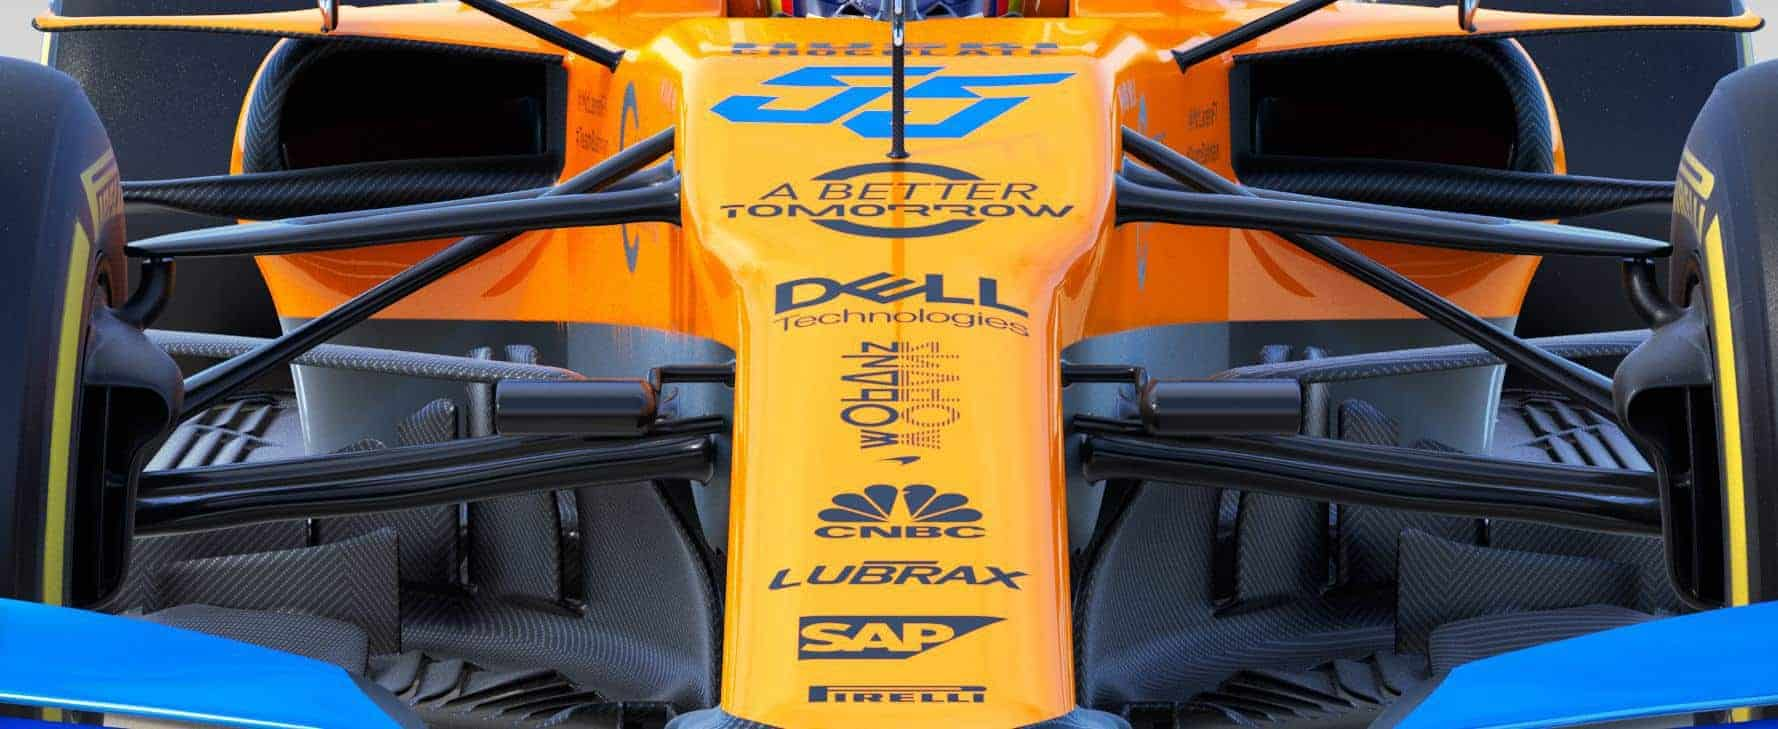 2019 McLaren MCL34 front suspension front view Photo McLaren Edited by MAXF1net